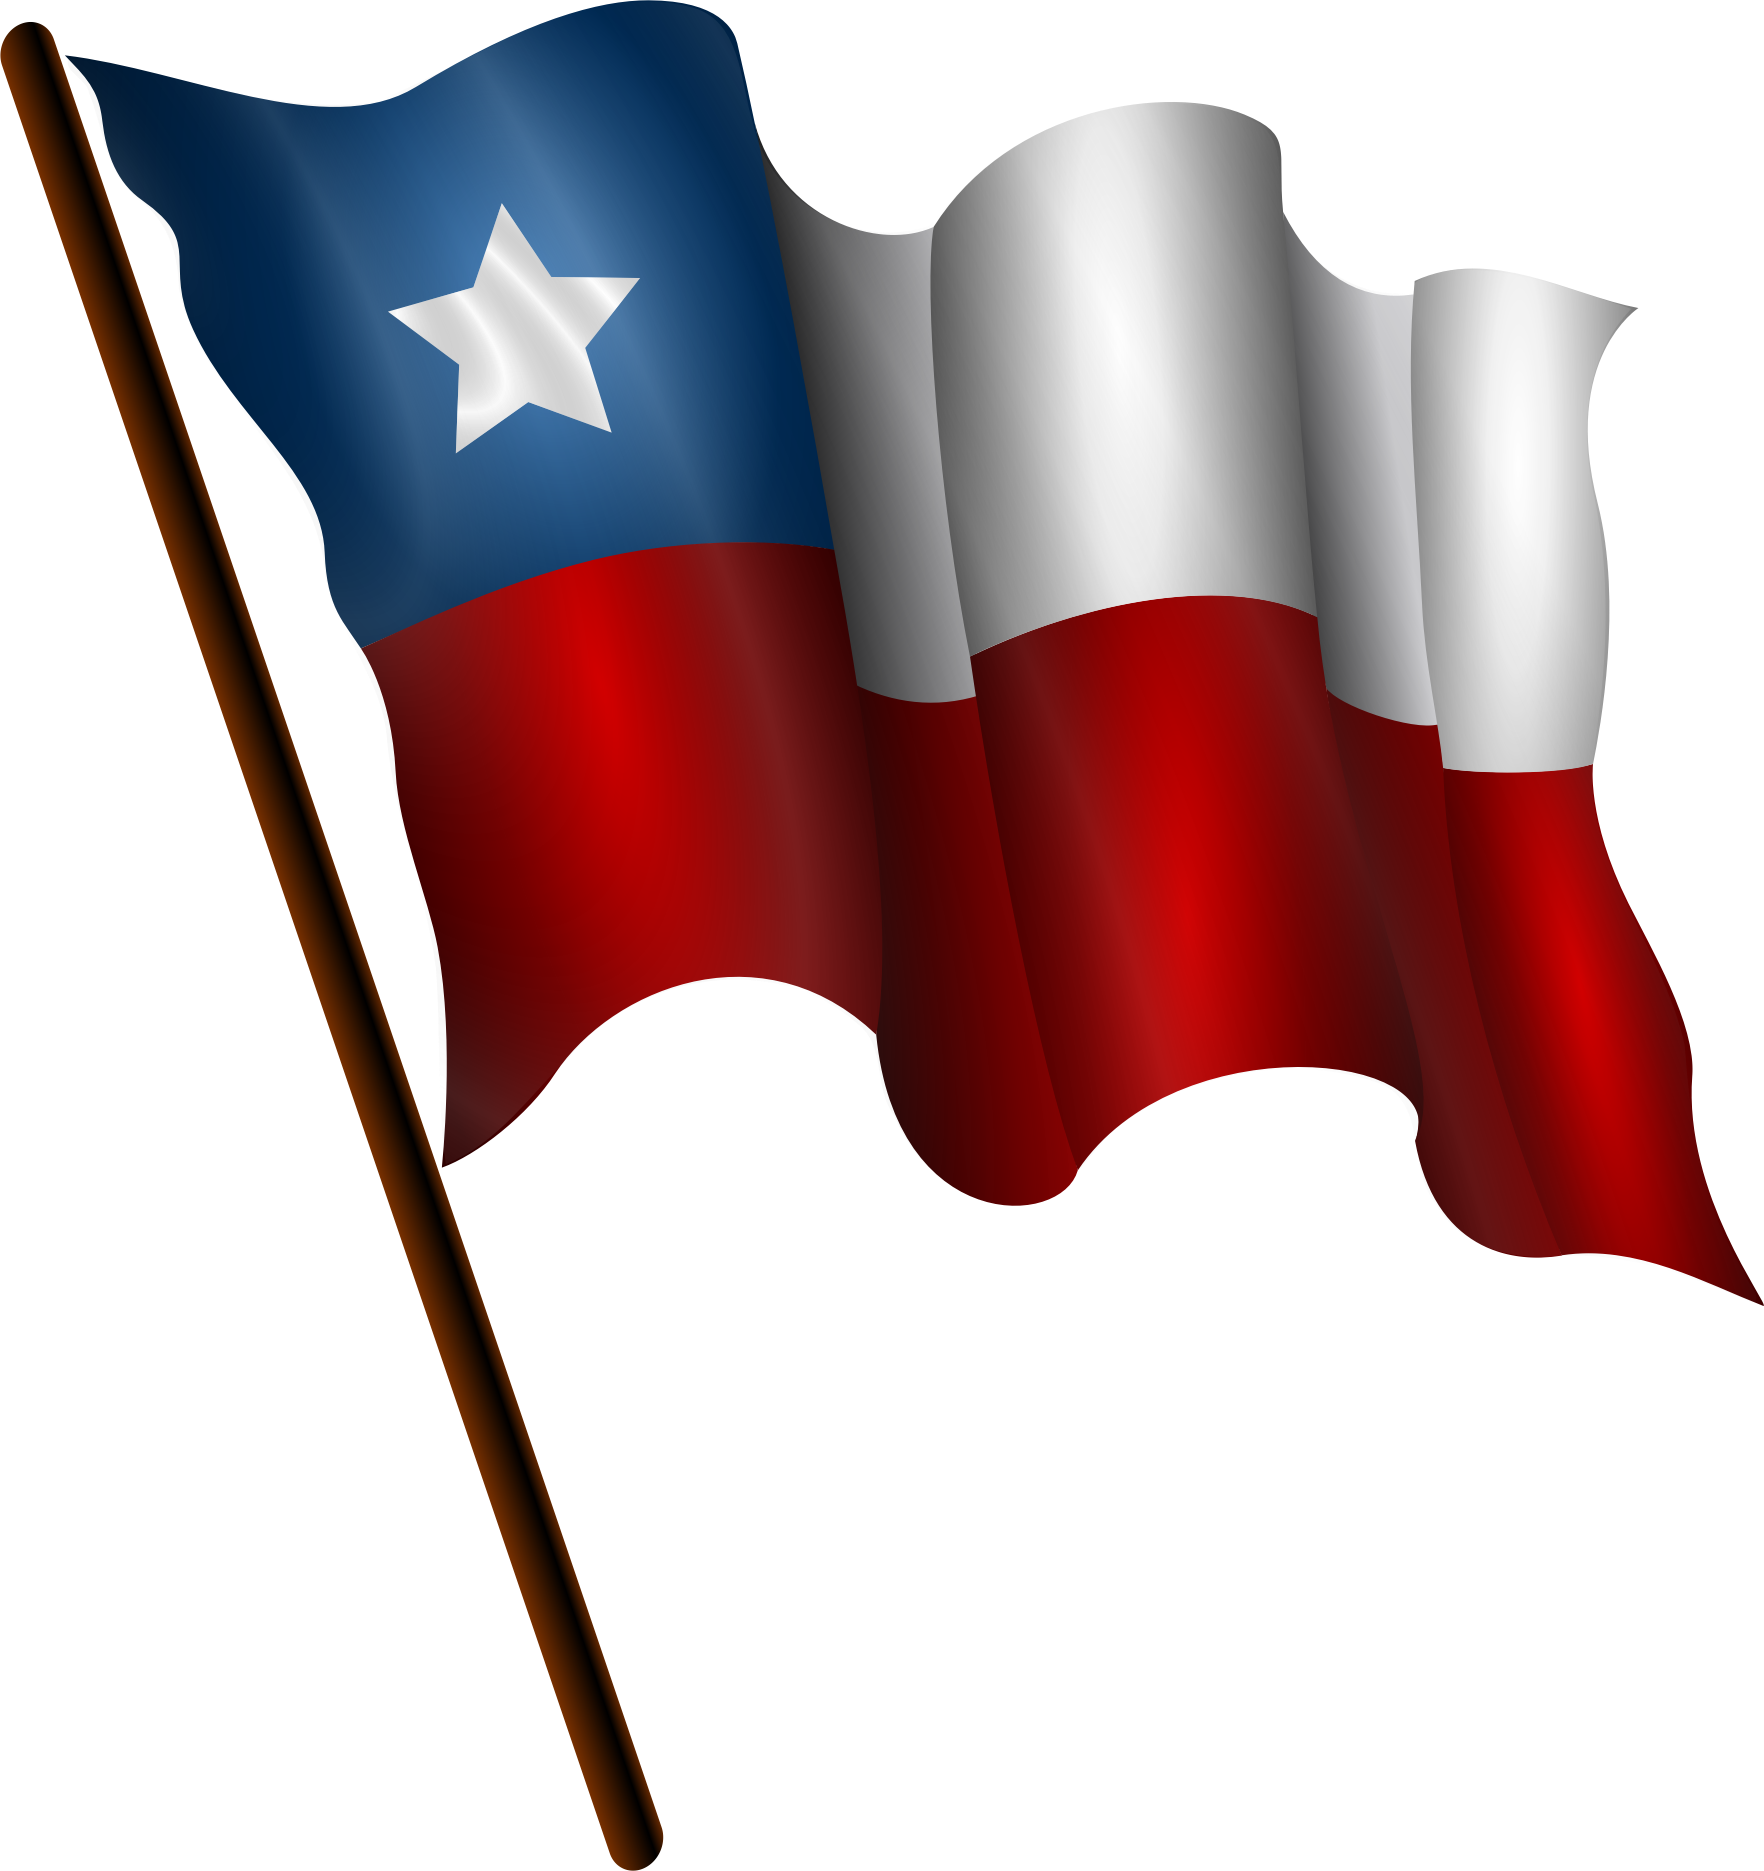 picture free download Chile png transparent images. Texas flag waving clipart